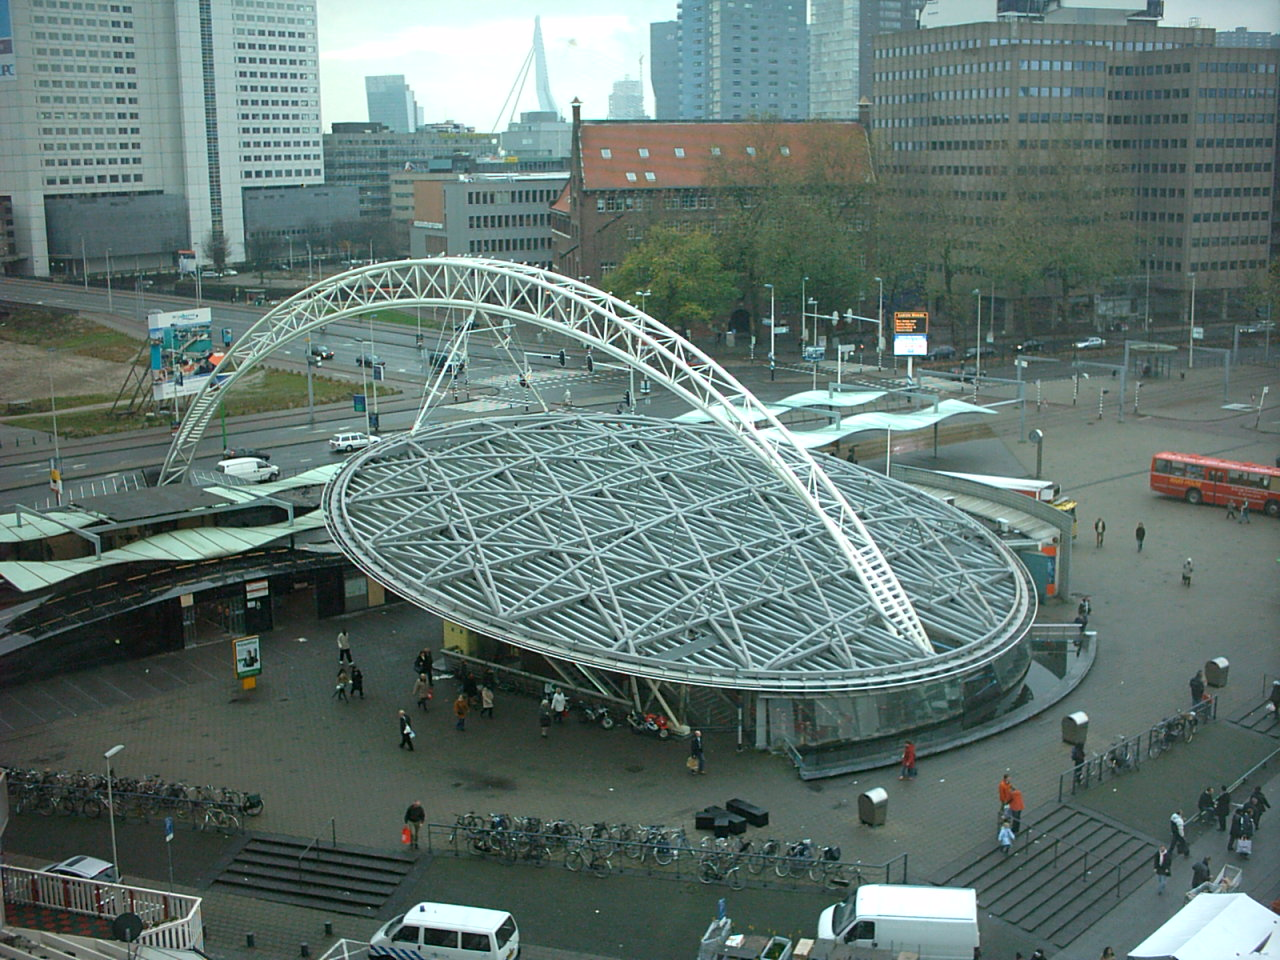 http://upload.wikimedia.org/wikipedia/commons/5/5b/Rotterdam-Blaak.JPG